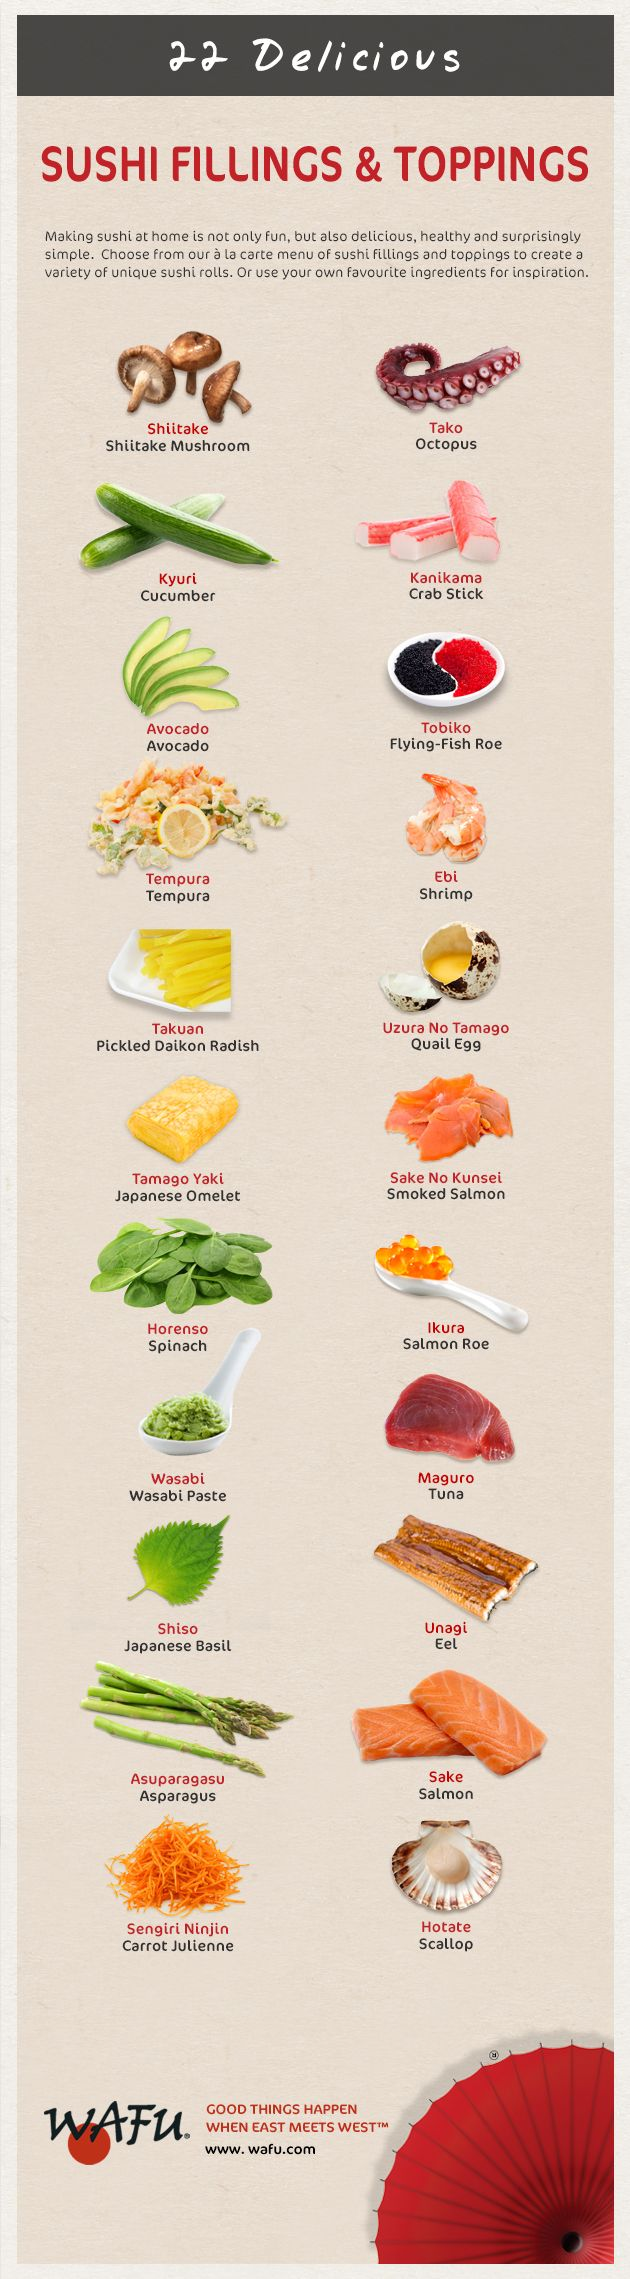 22 Delicious Sushi Fillings & Toppings (Infographic | sushi ...